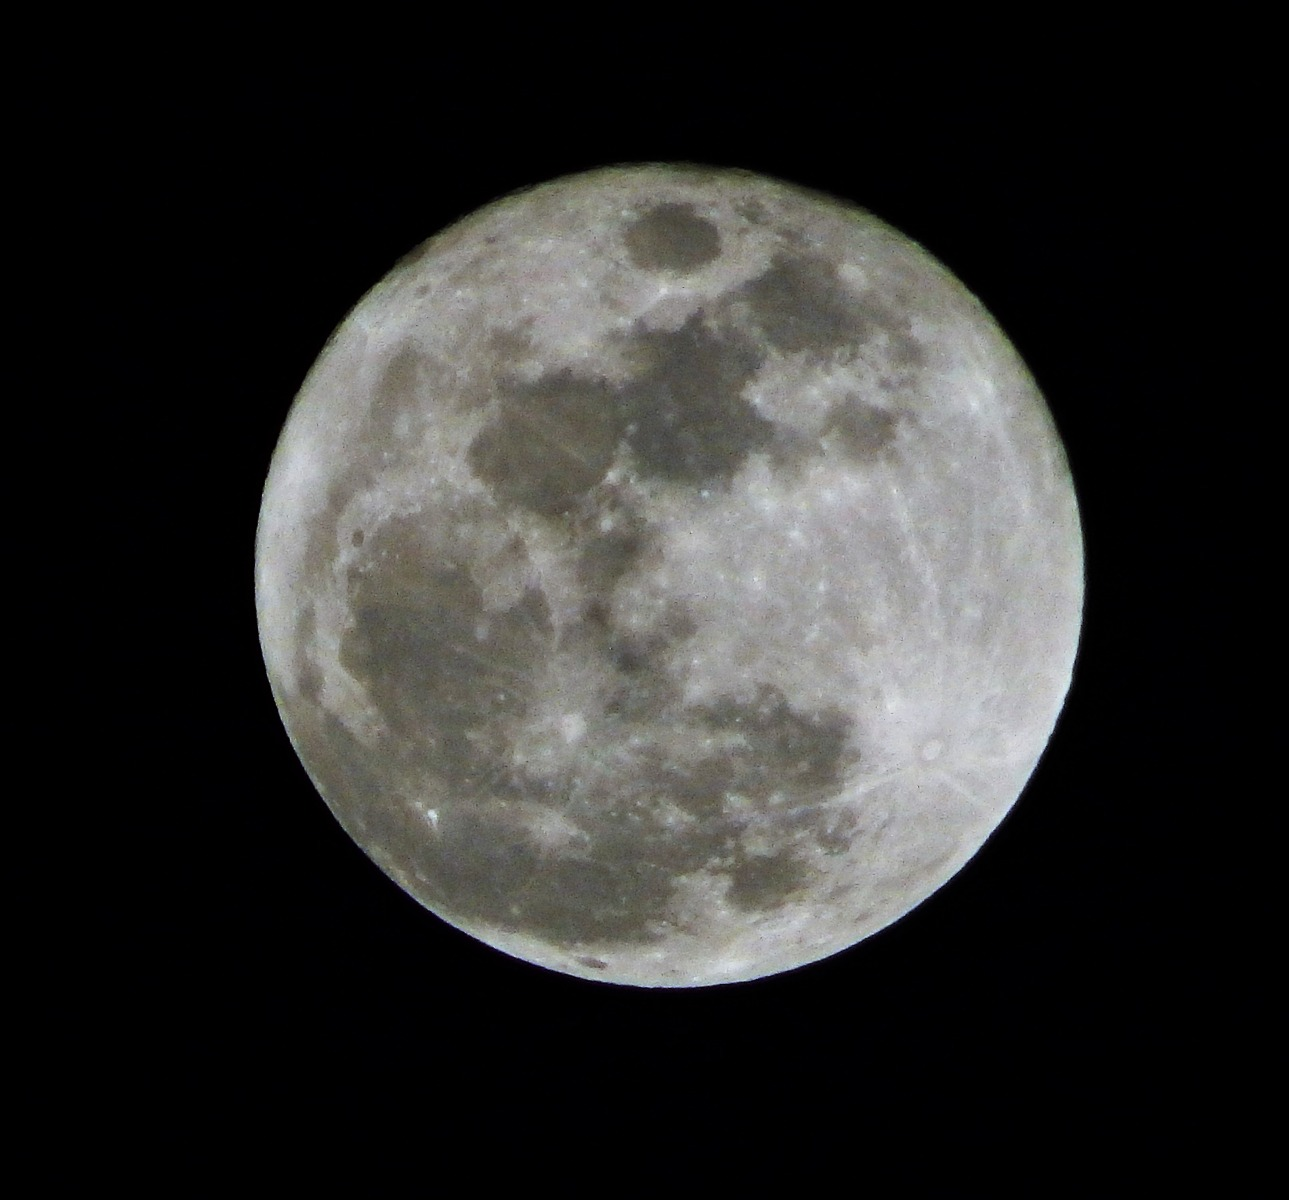 A full moon is easy to capture here ...